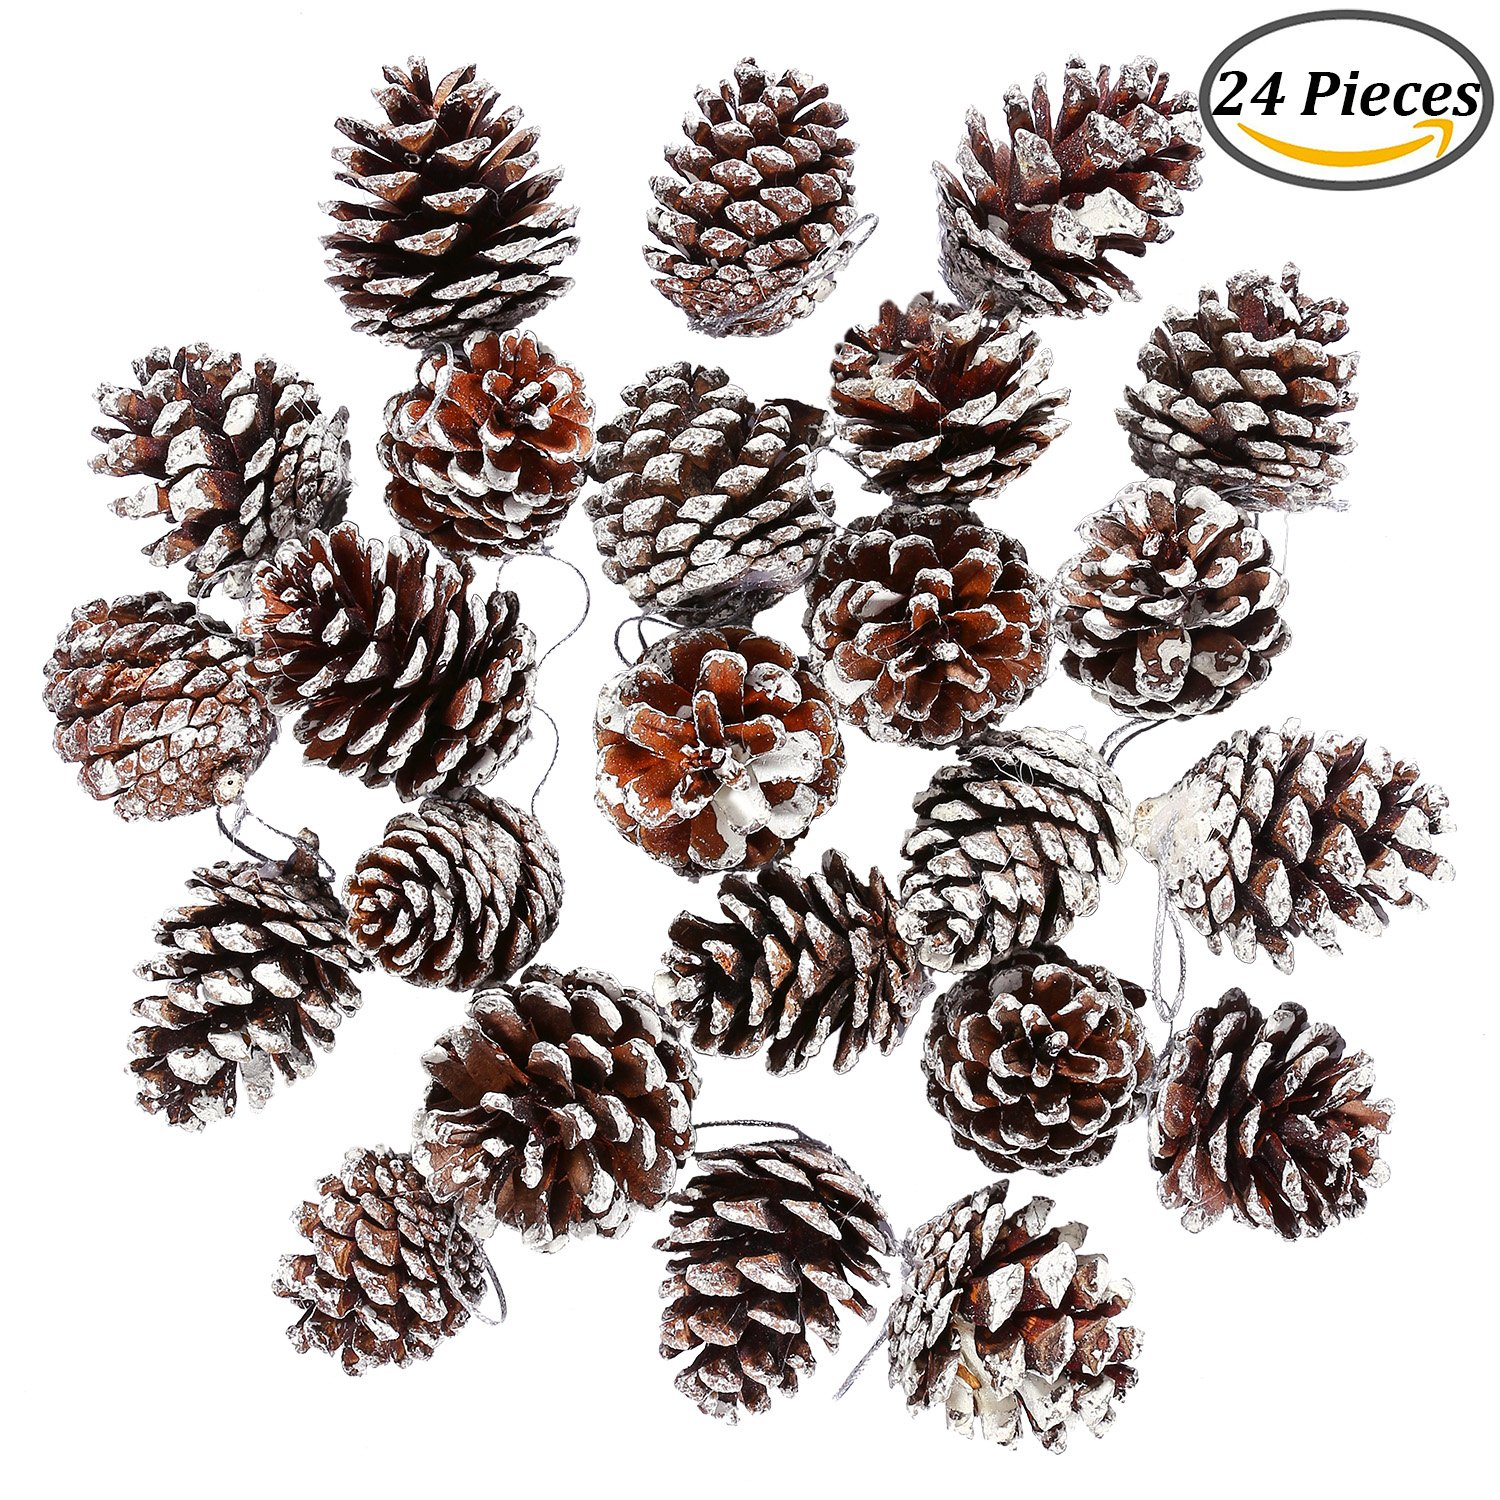 coobey 24 pieces christmas pine cones ornament natural pinecones with string pendant crafts for gift tag - Decorating Large Pine Cones For Christmas